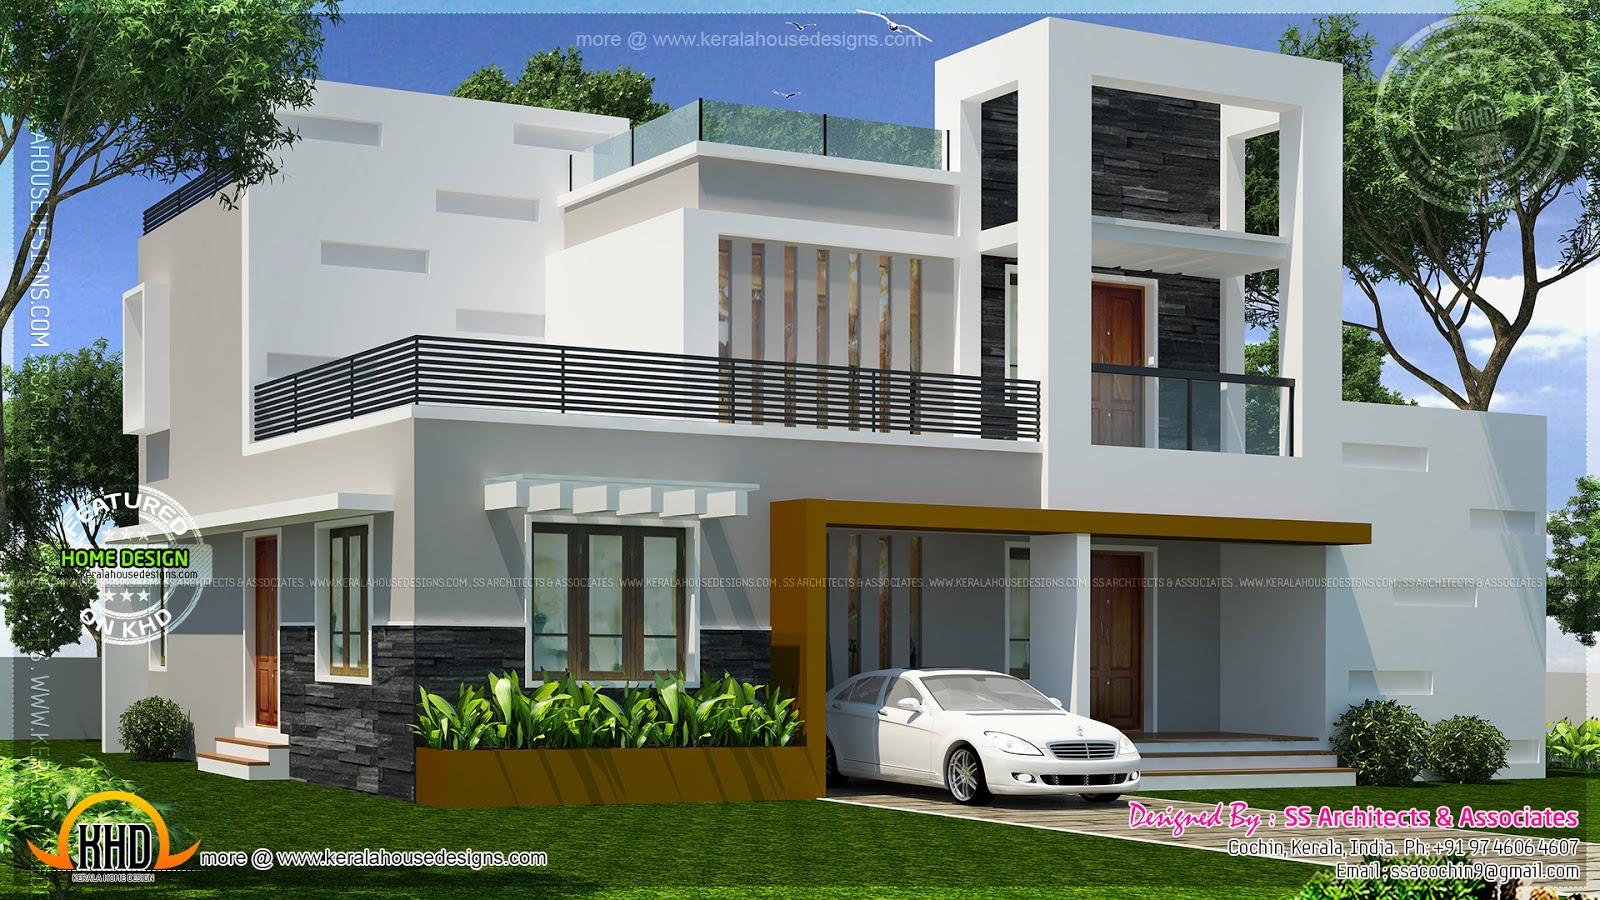 Contemporary double storied small villa kerala home design and floor plans - Modern villa designs ...